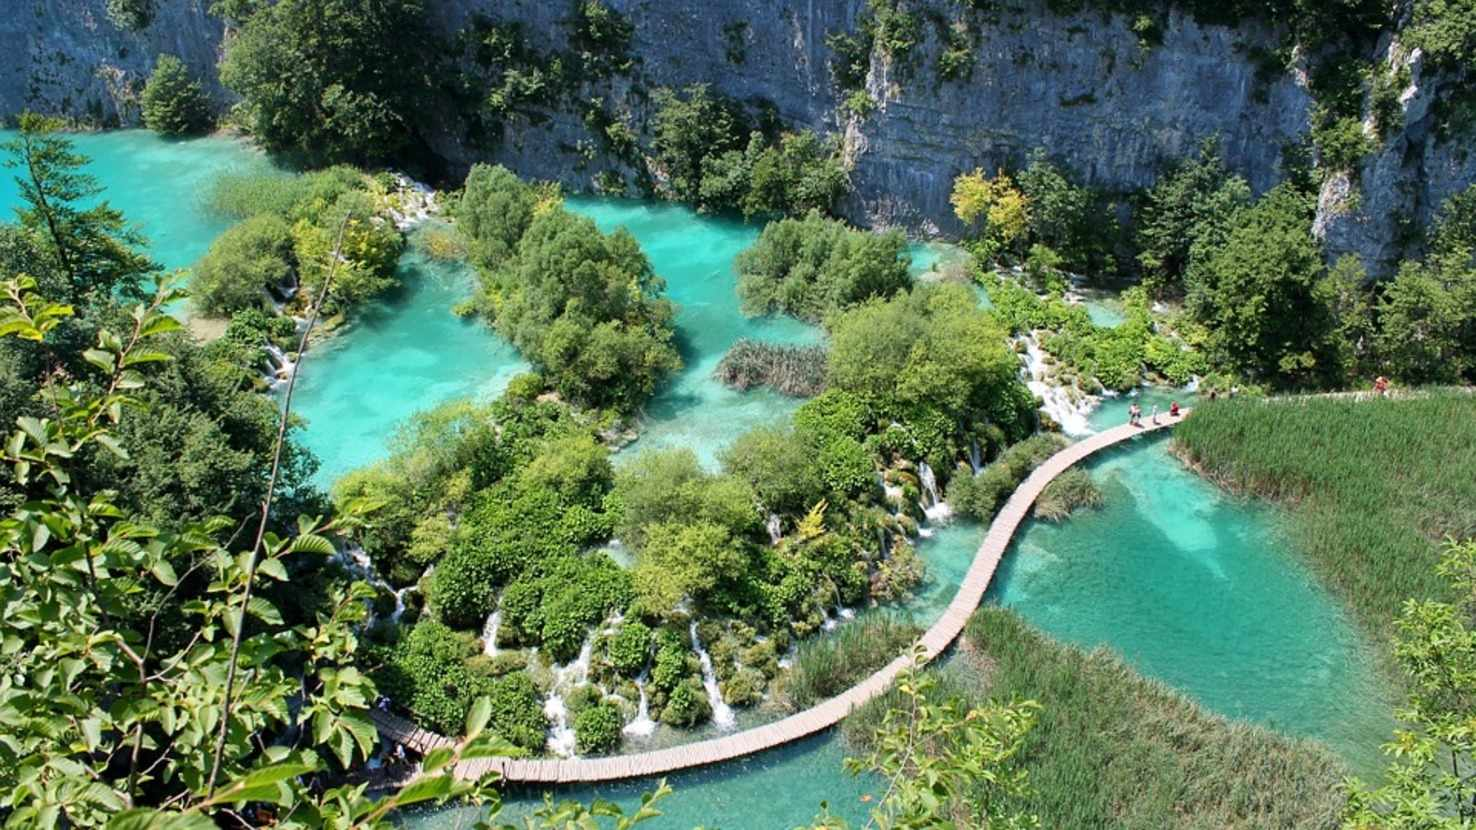 Large plitvice lakes